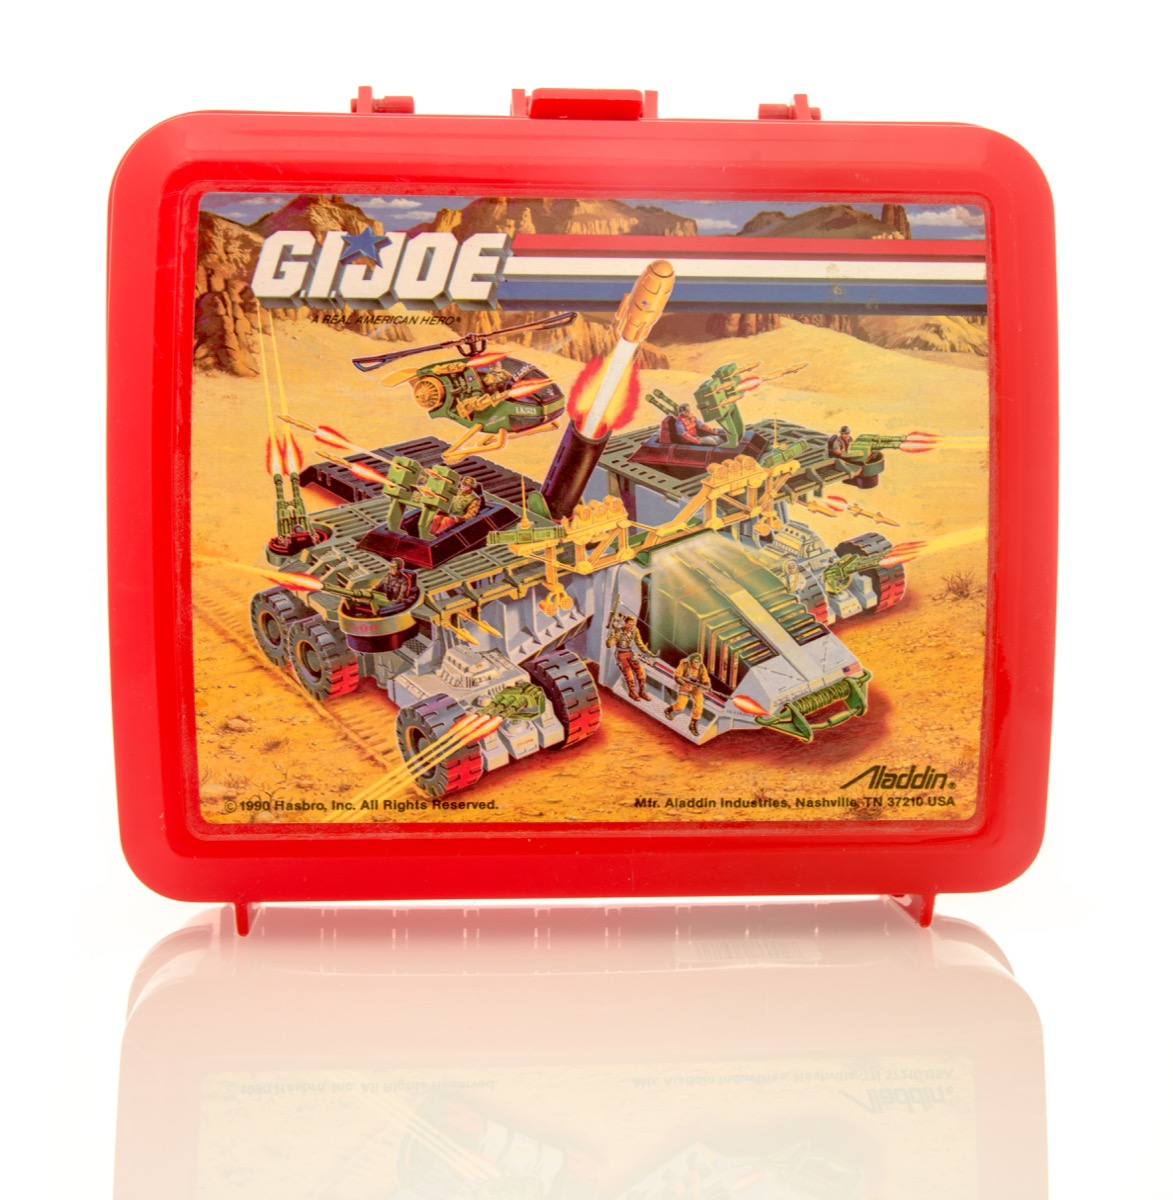 Winneconne, WI - 6 April 2016: Plastic lunch box featuring G.I. Joe on an isolated background. - Image